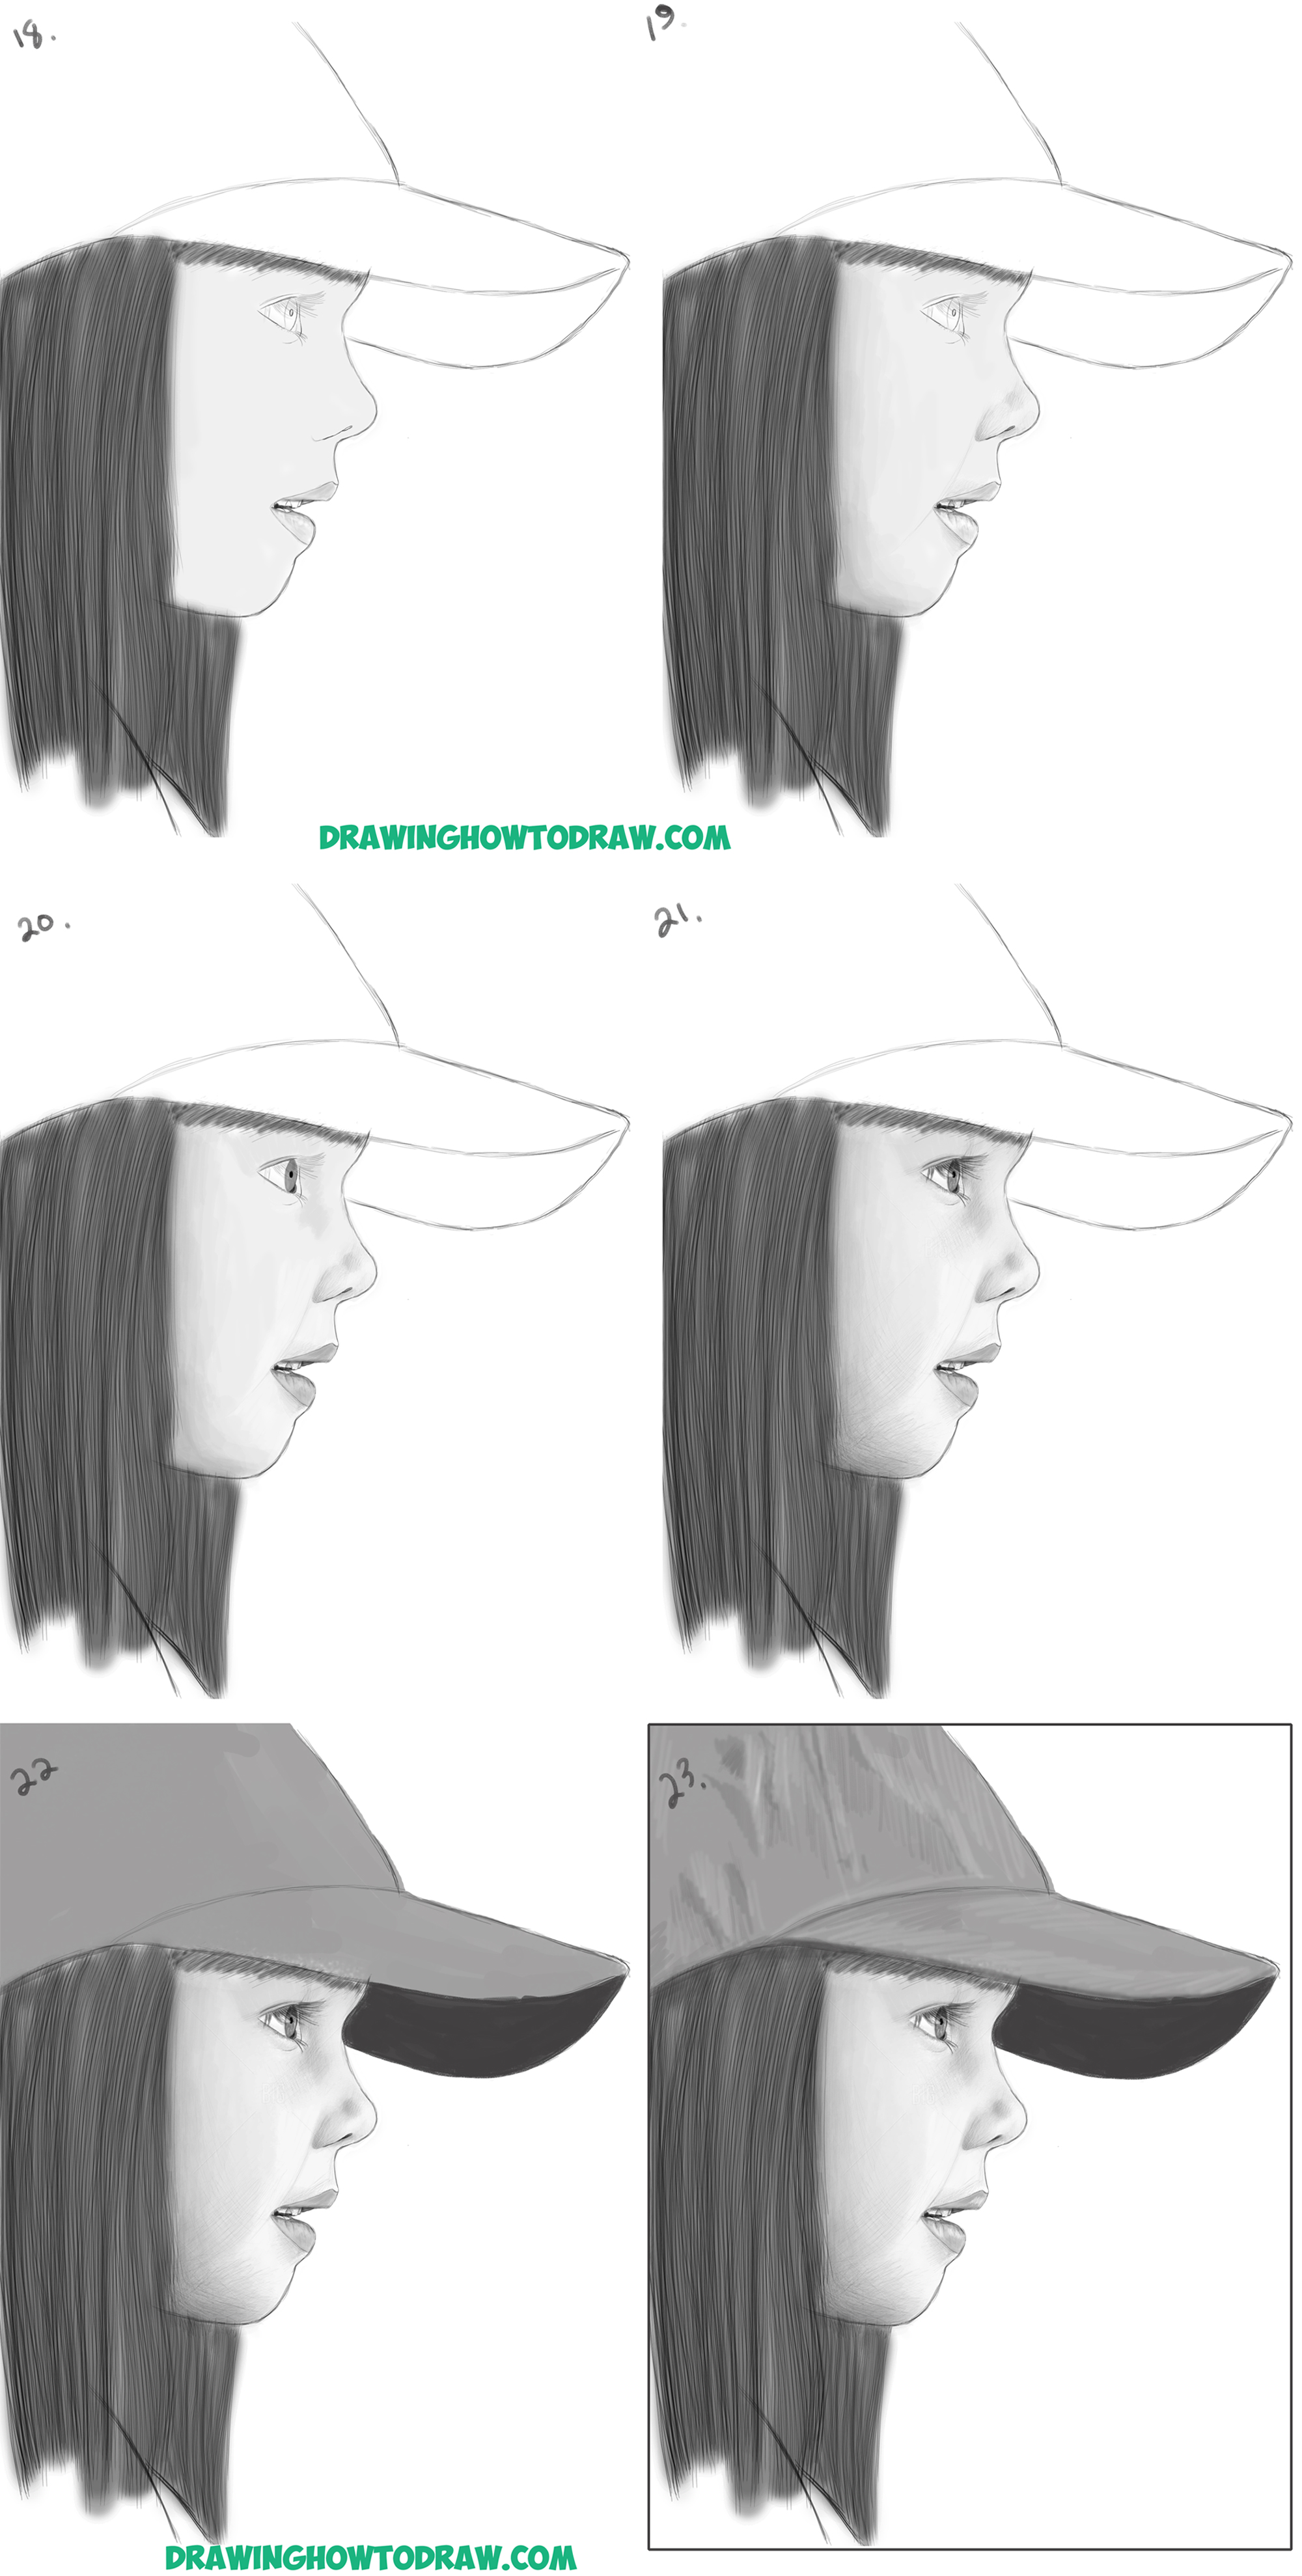 Learn How to Draw a Realistic Cute Little Girl's Face/Head from the Side Profile View Easy Step by Step Drawing Lesson for Beginners